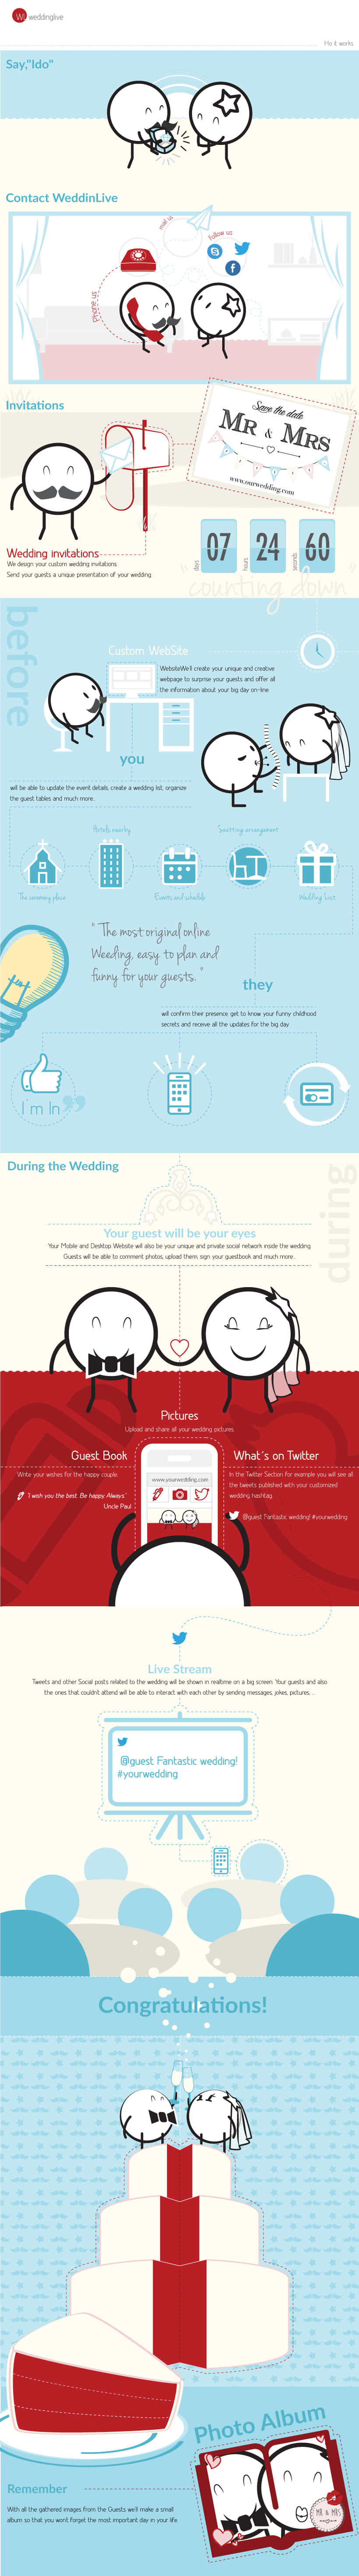 WeddingLive - Infografía 1